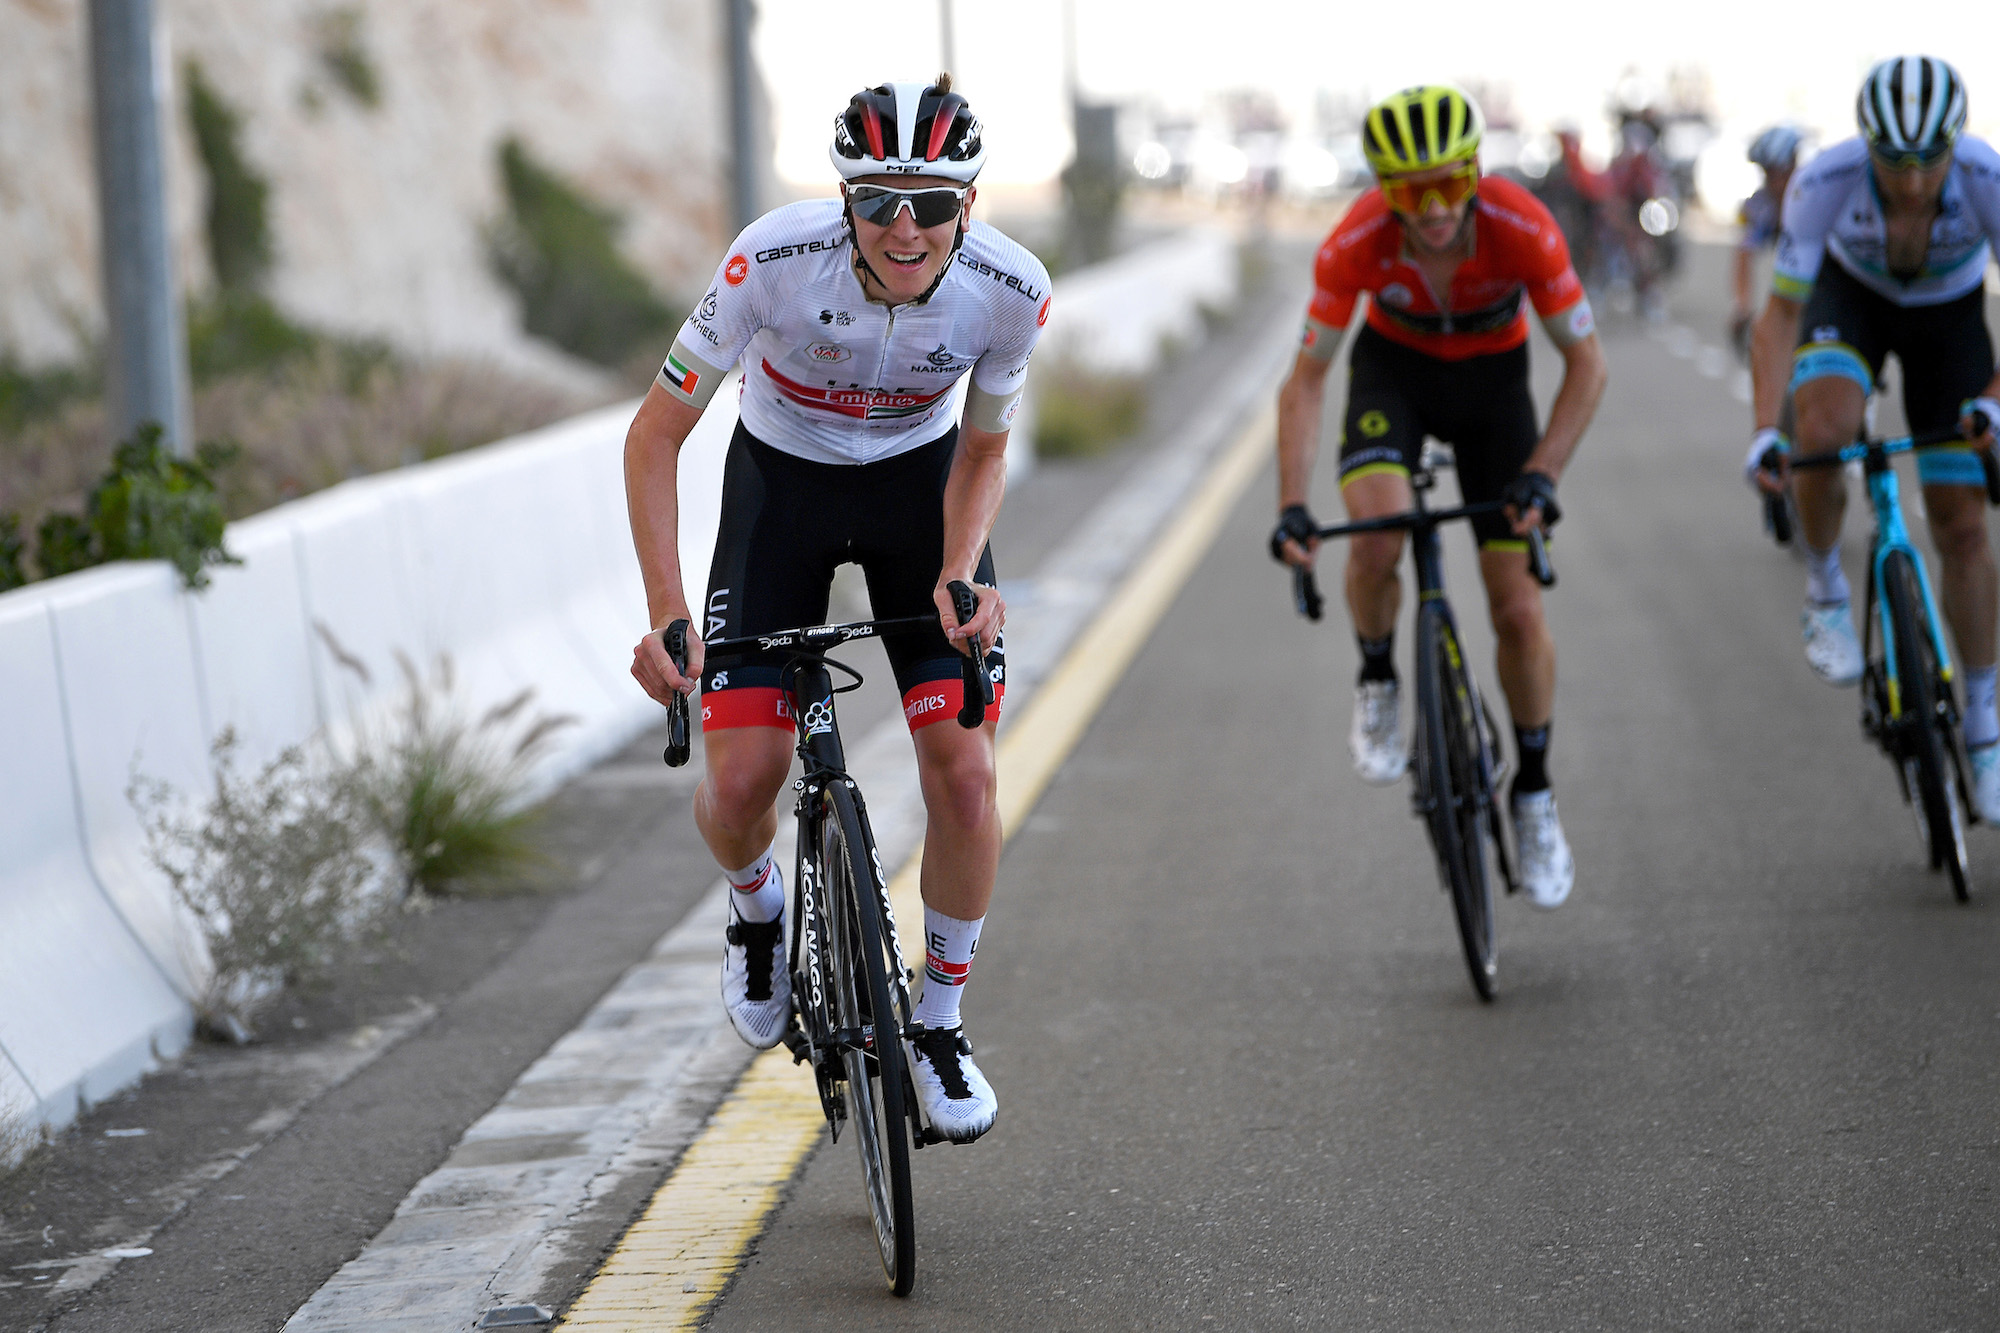 How to watch the UAE Tour 2021: Watch the WorldTour stage race featuring  Chris Froome and Mathieu van der Poel - Cycling Weekly